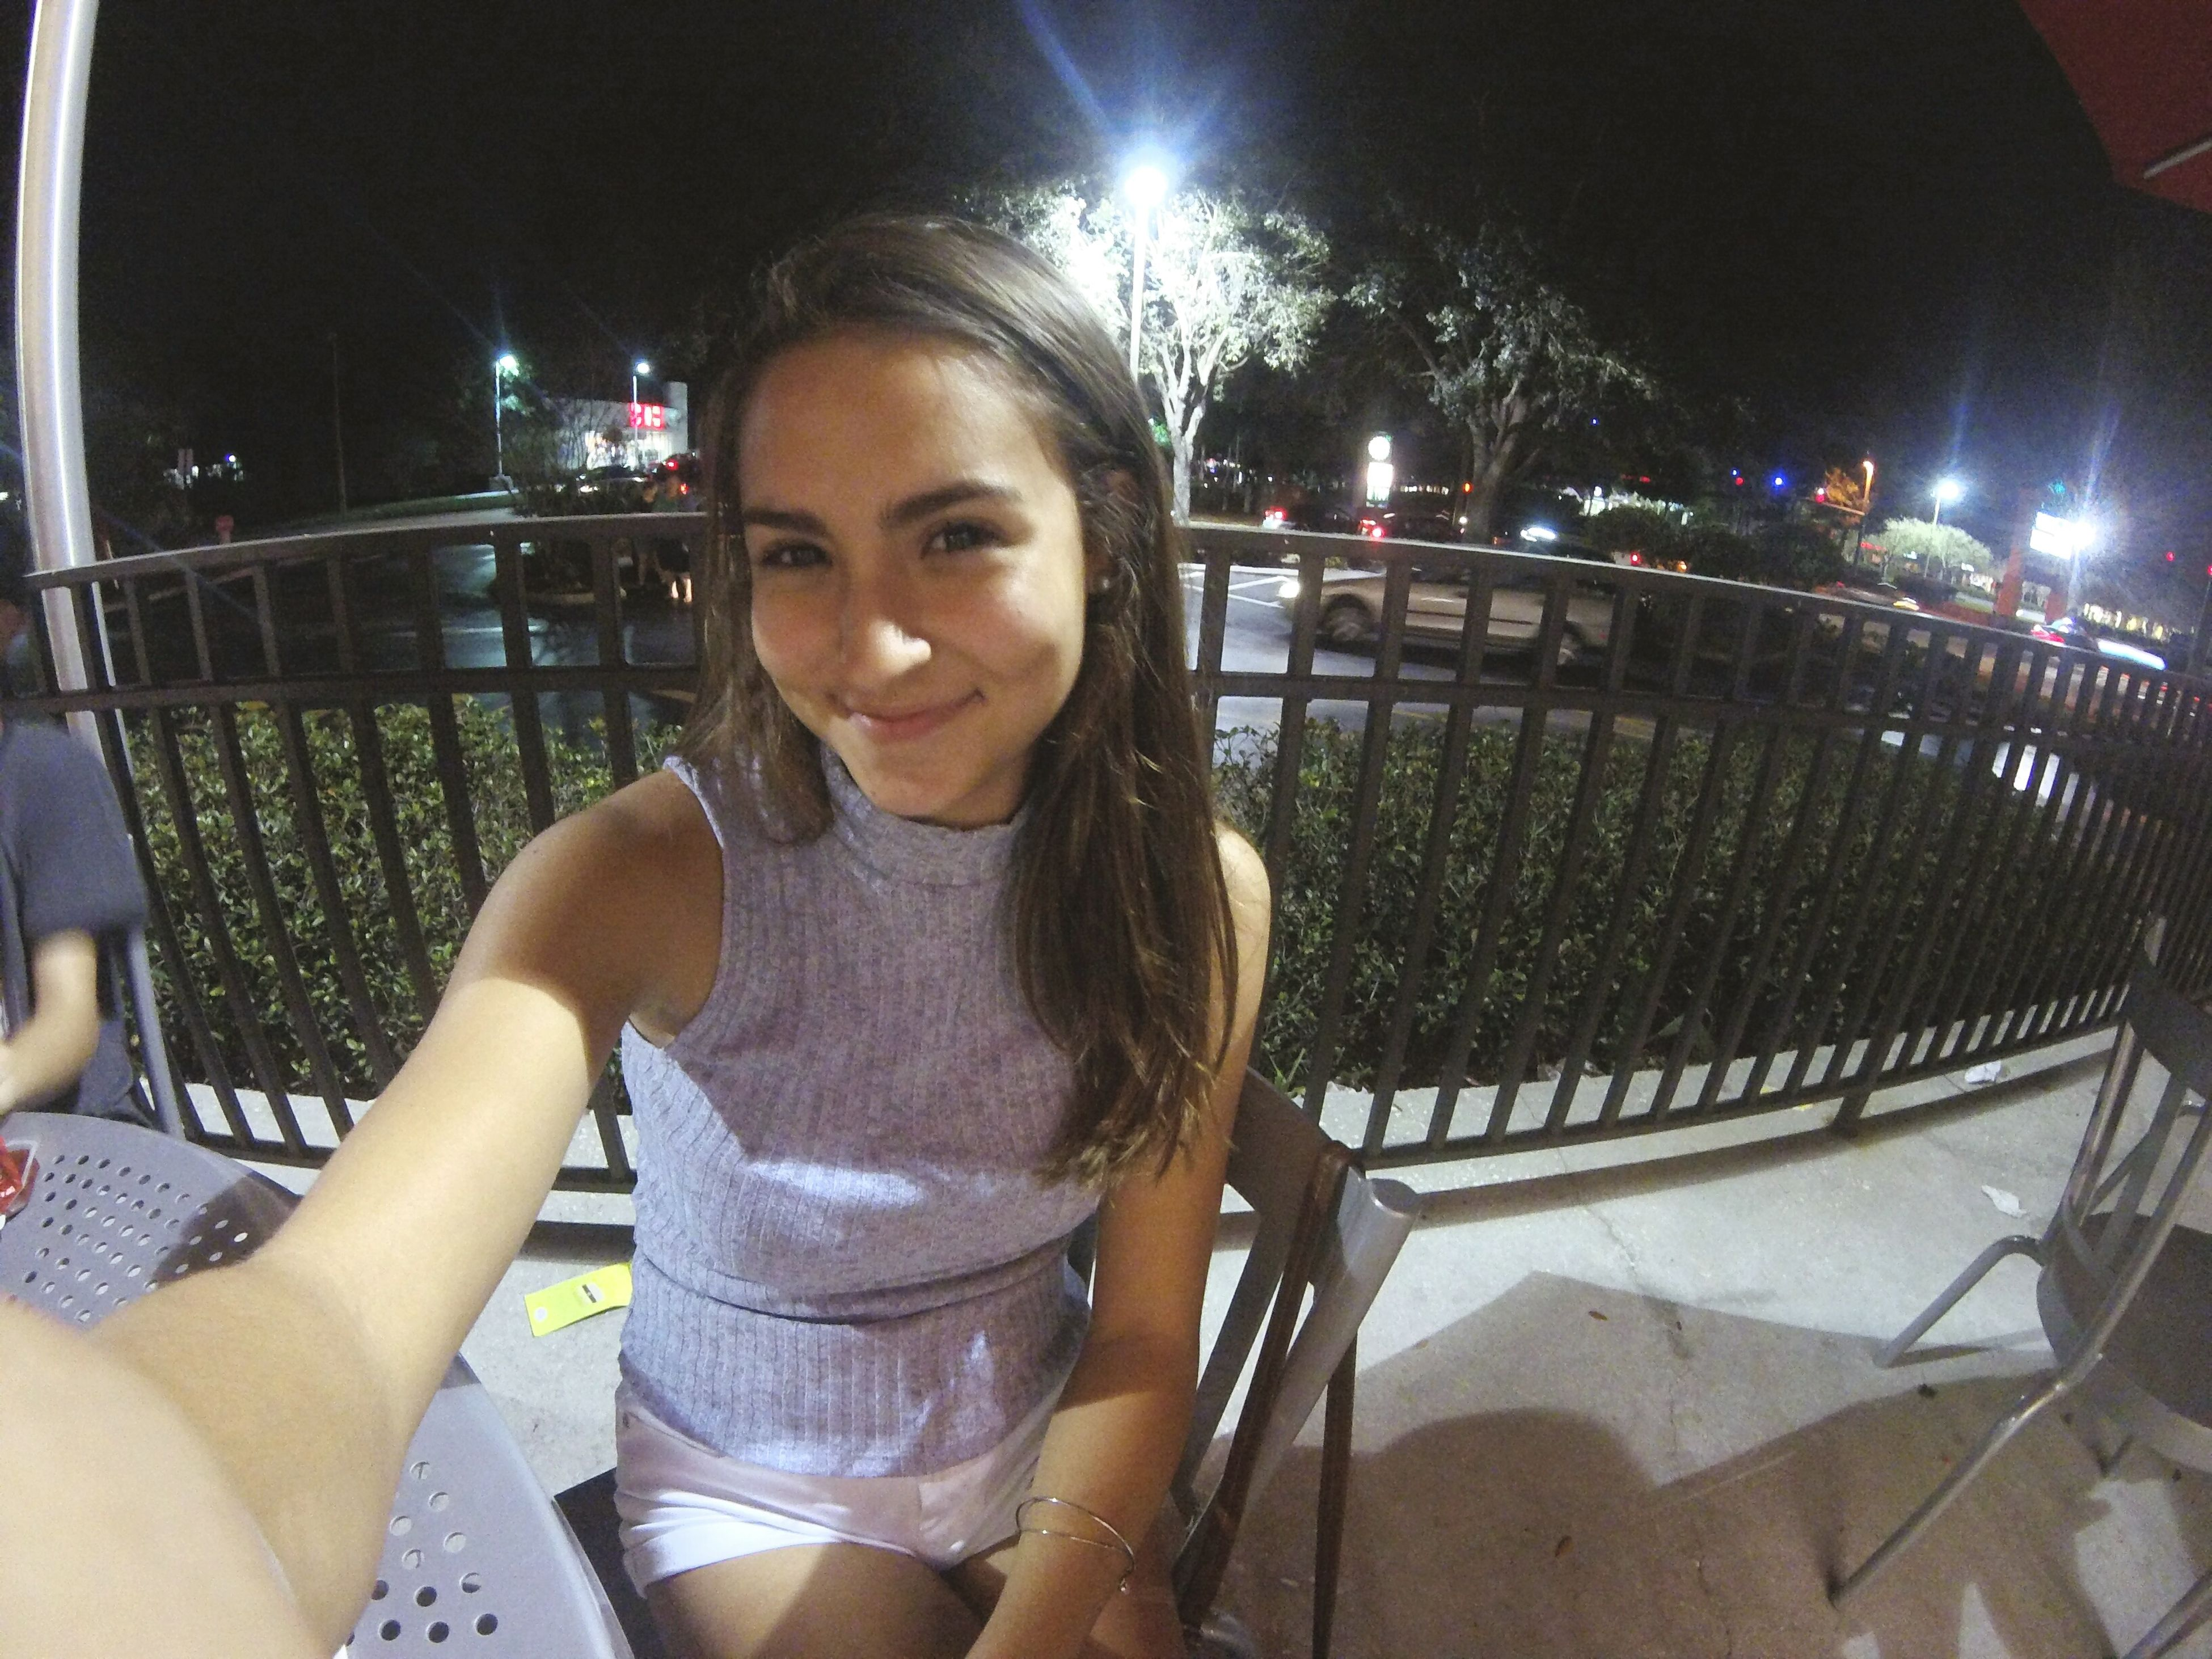 lifestyles, leisure activity, night, person, looking at camera, illuminated, portrait, casual clothing, young adult, indoors, front view, standing, young women, sitting, headshot, happiness, waist up, smiling